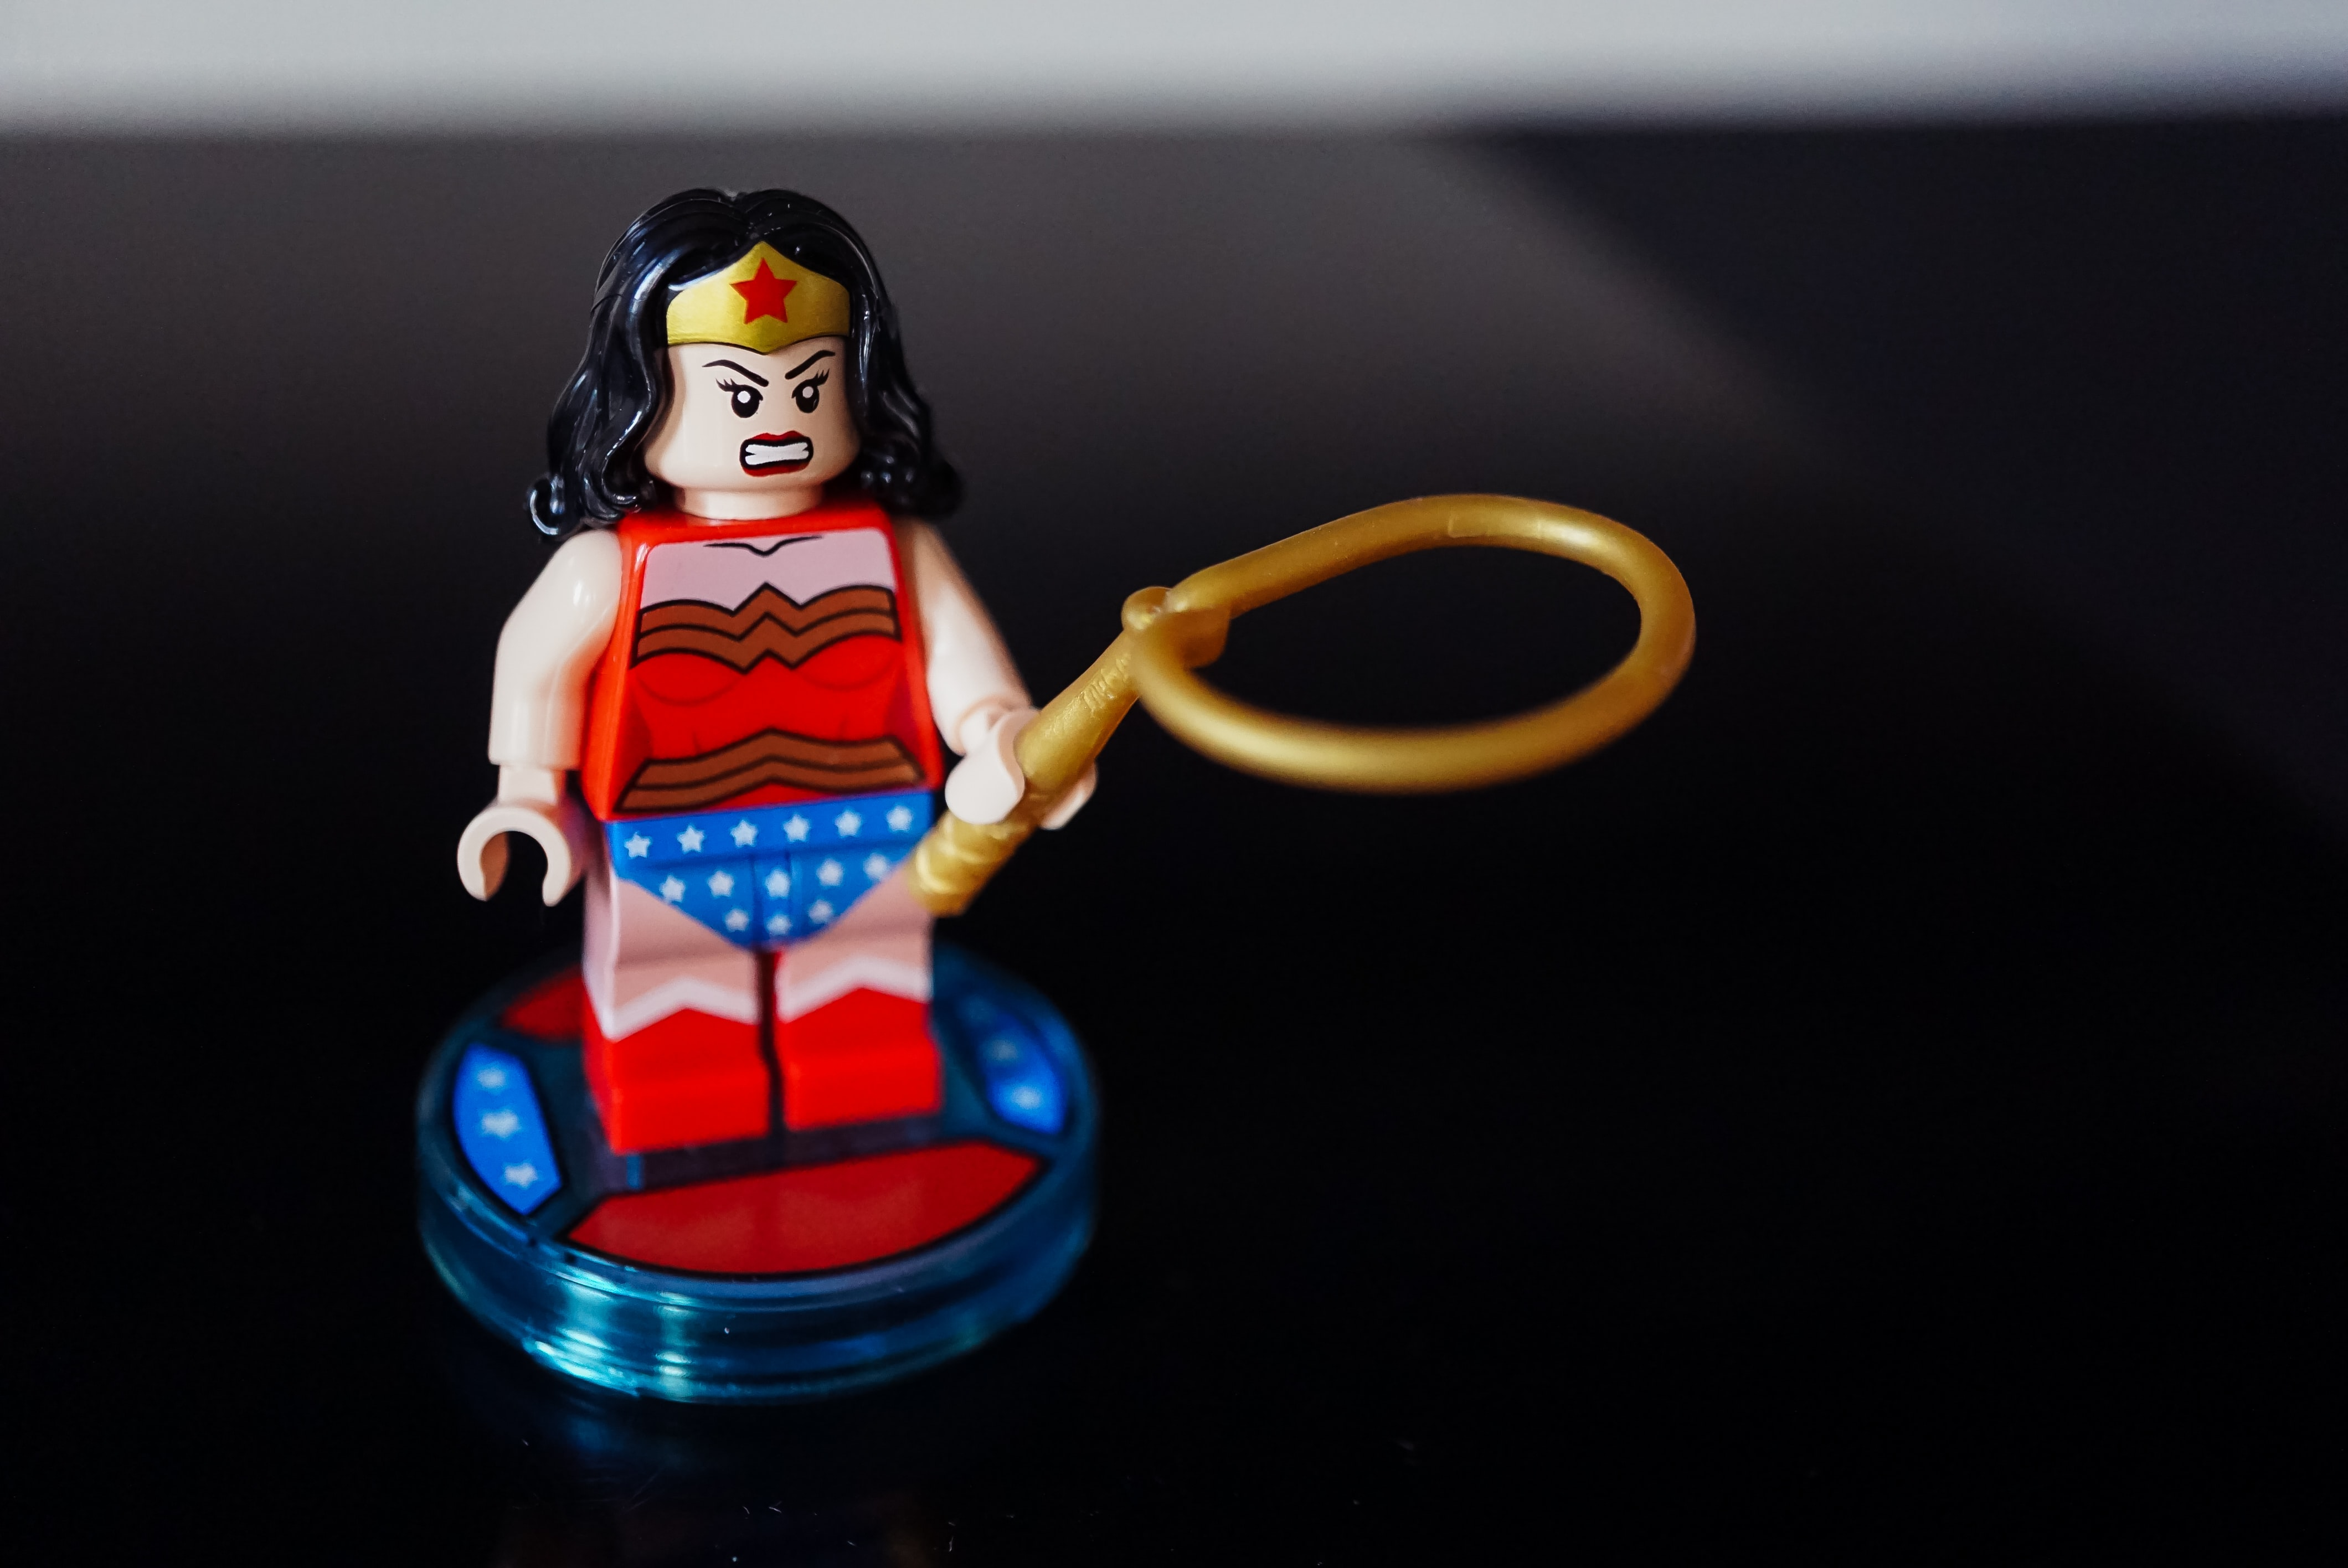 Wonder Woman Lego holding whip toy